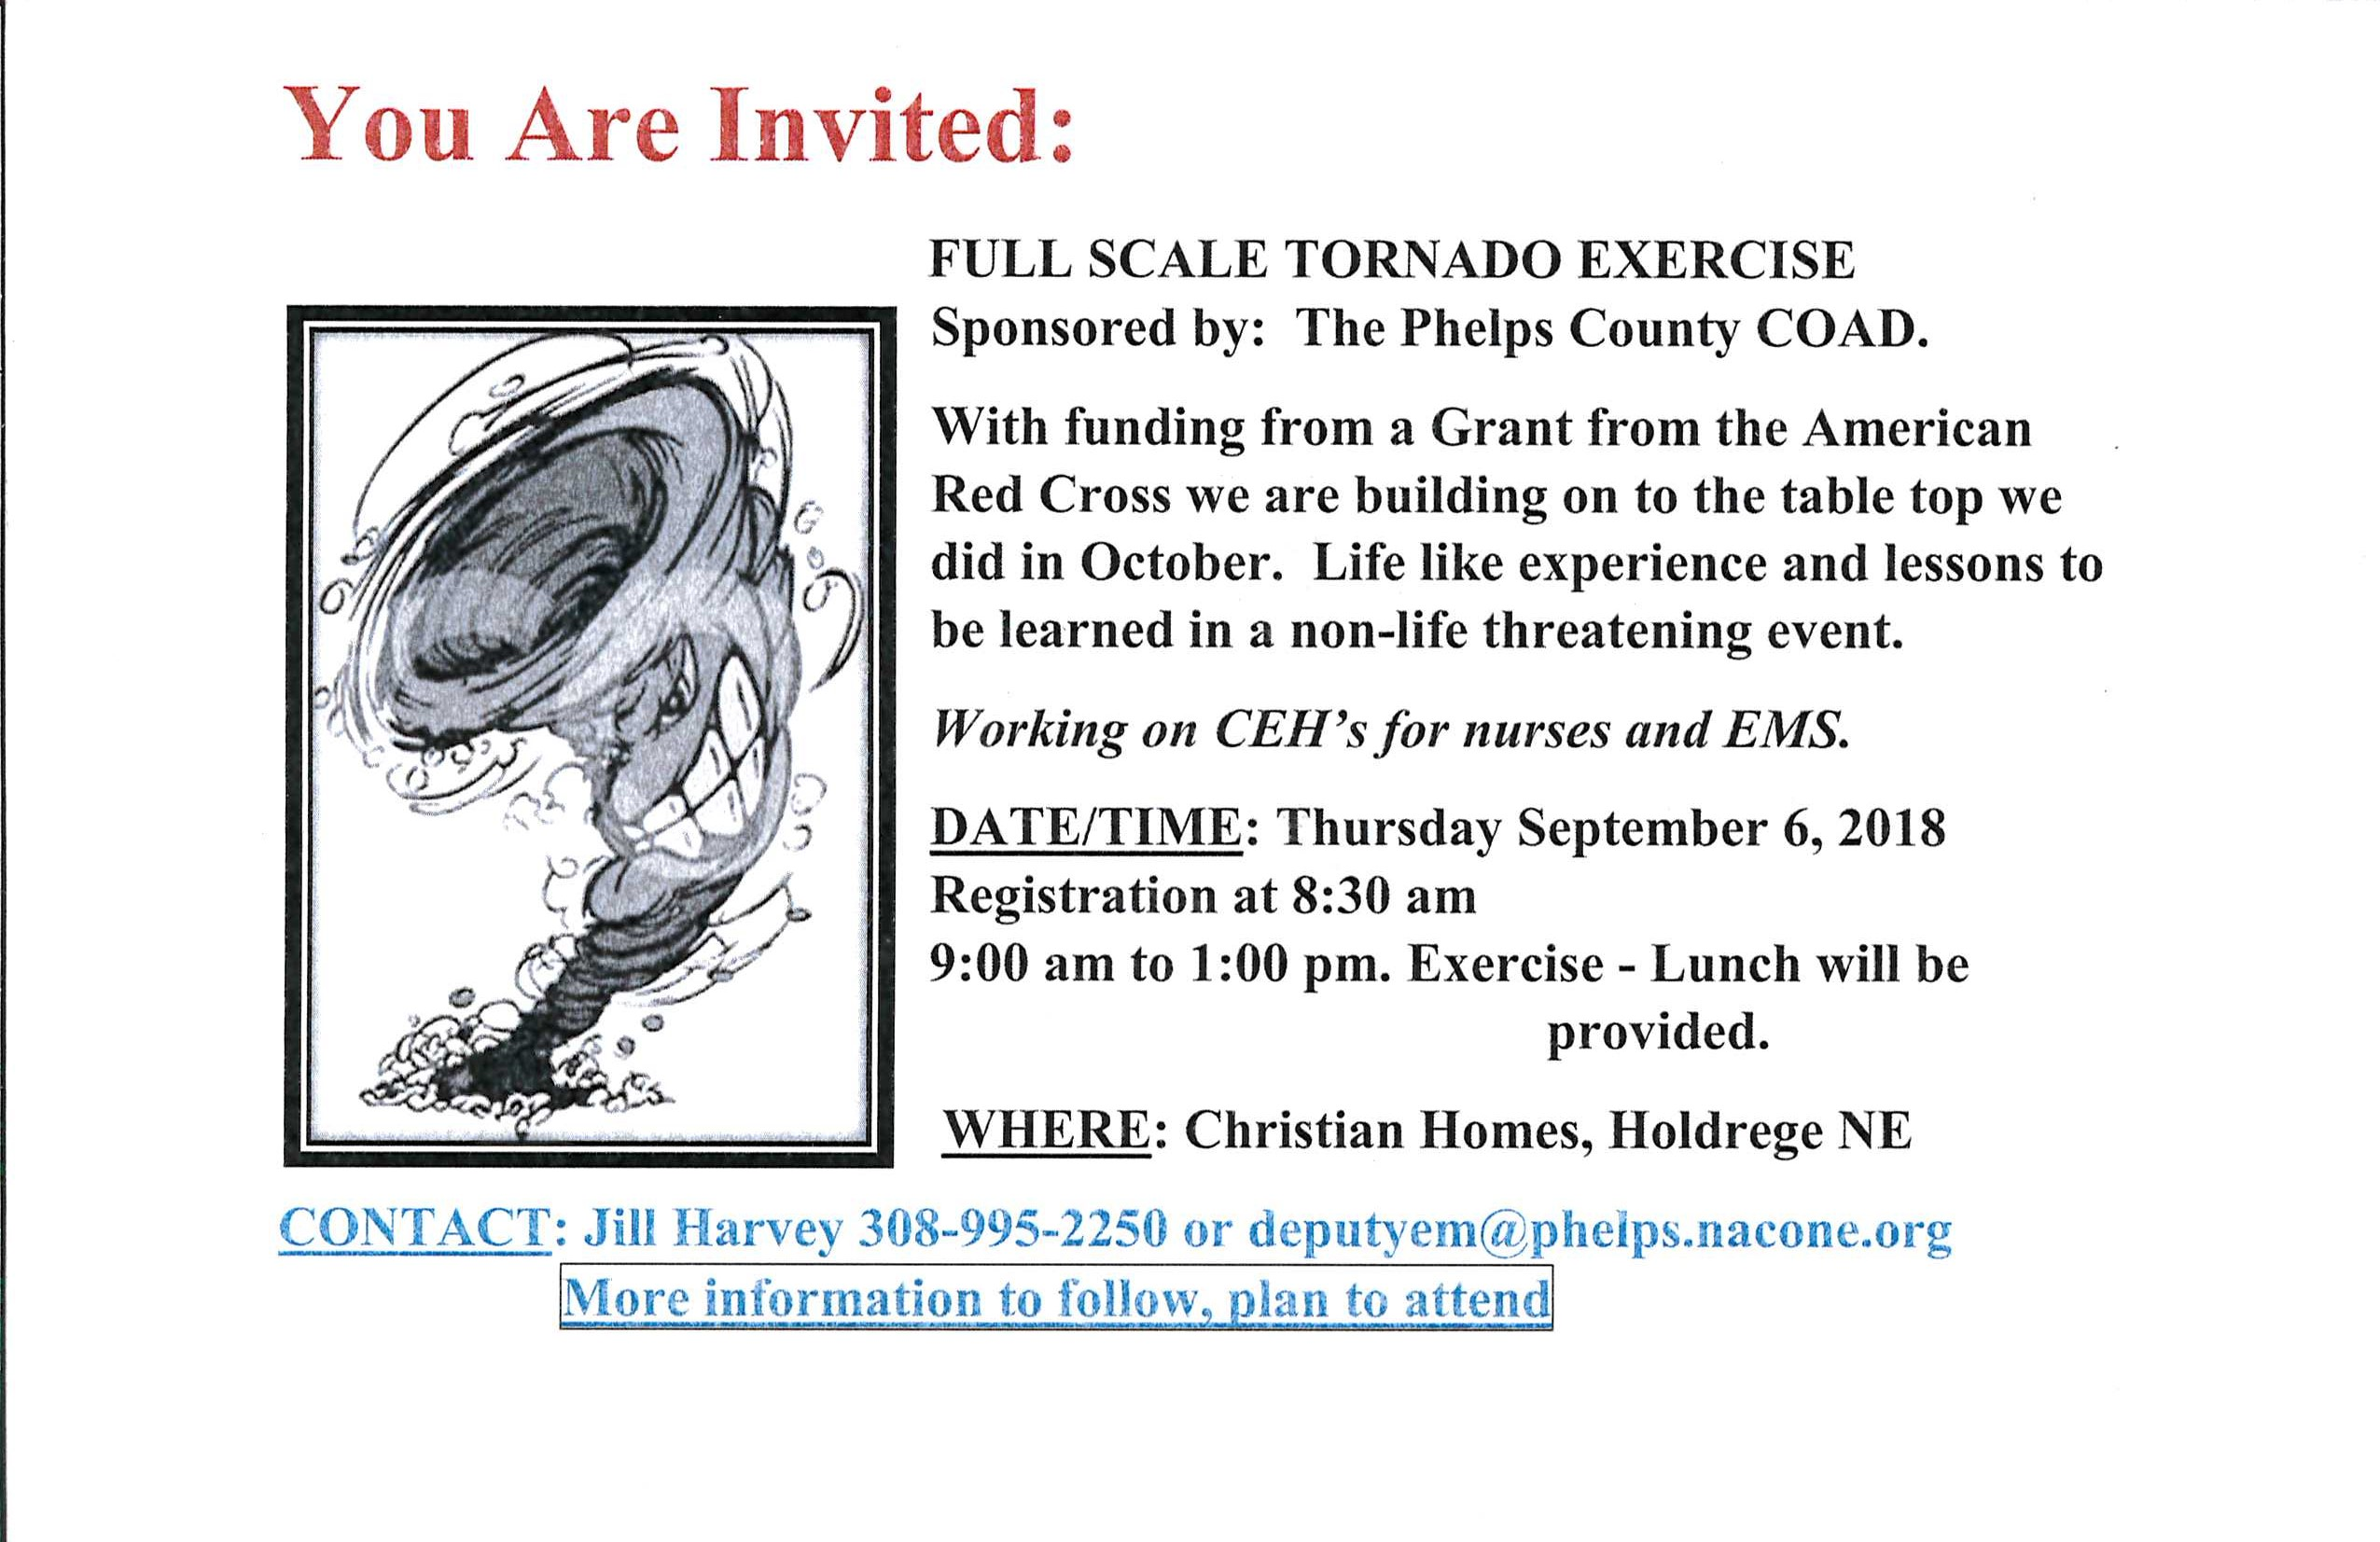 Full Scale Tornado Exercise September 6, 2018